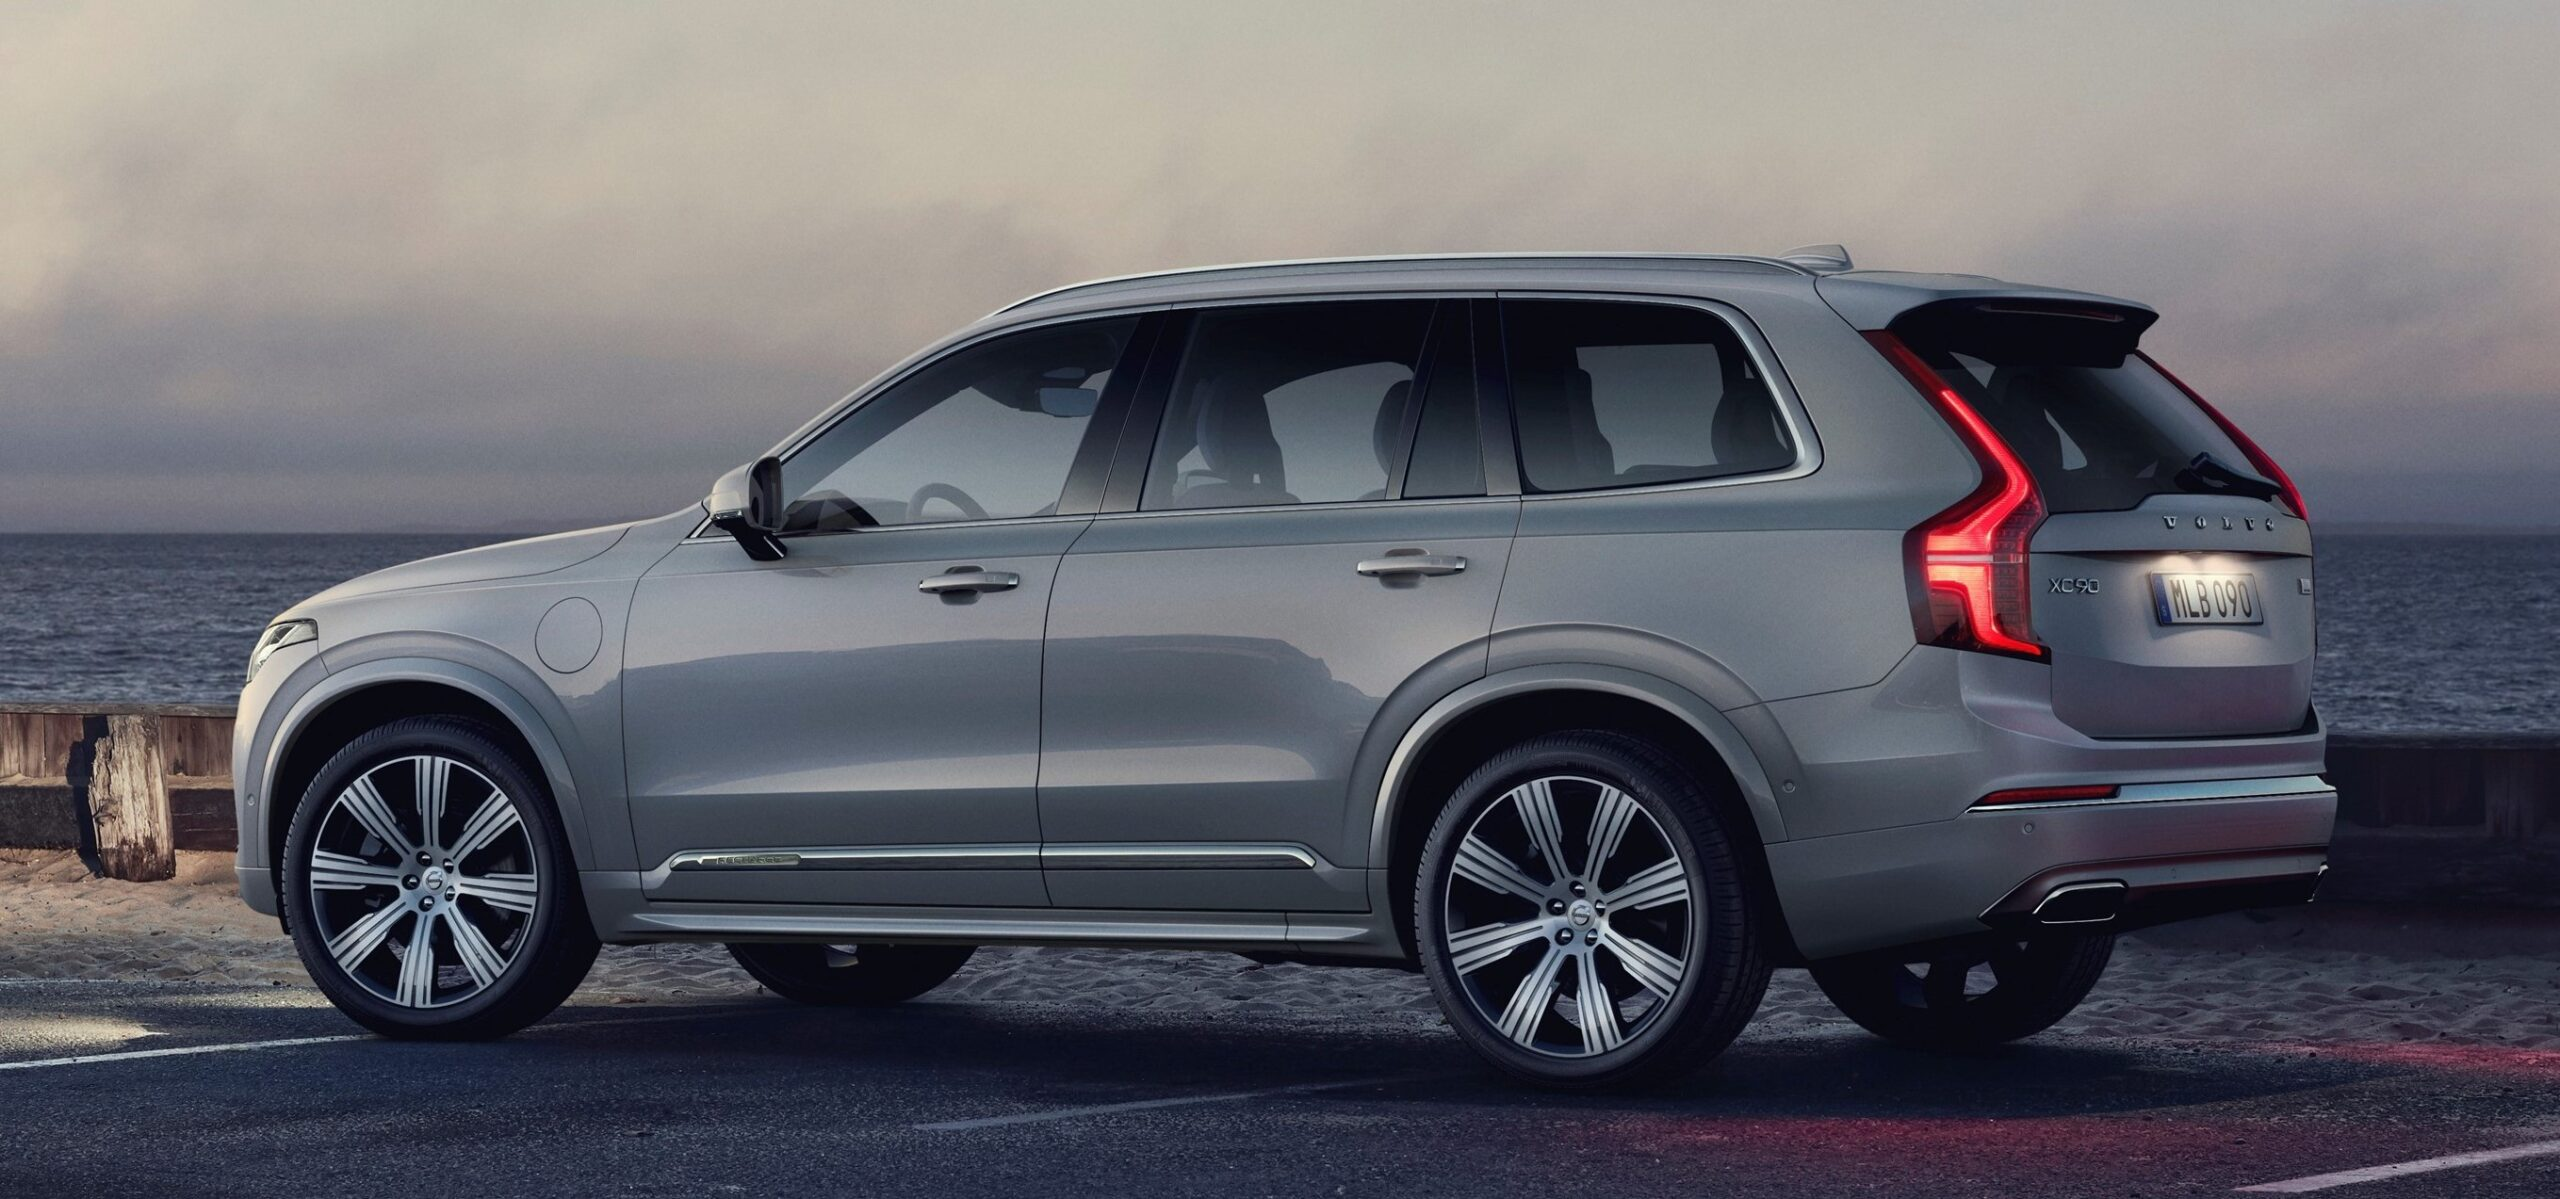 An exterior view of Volvo's XC90 plug-in hybrid